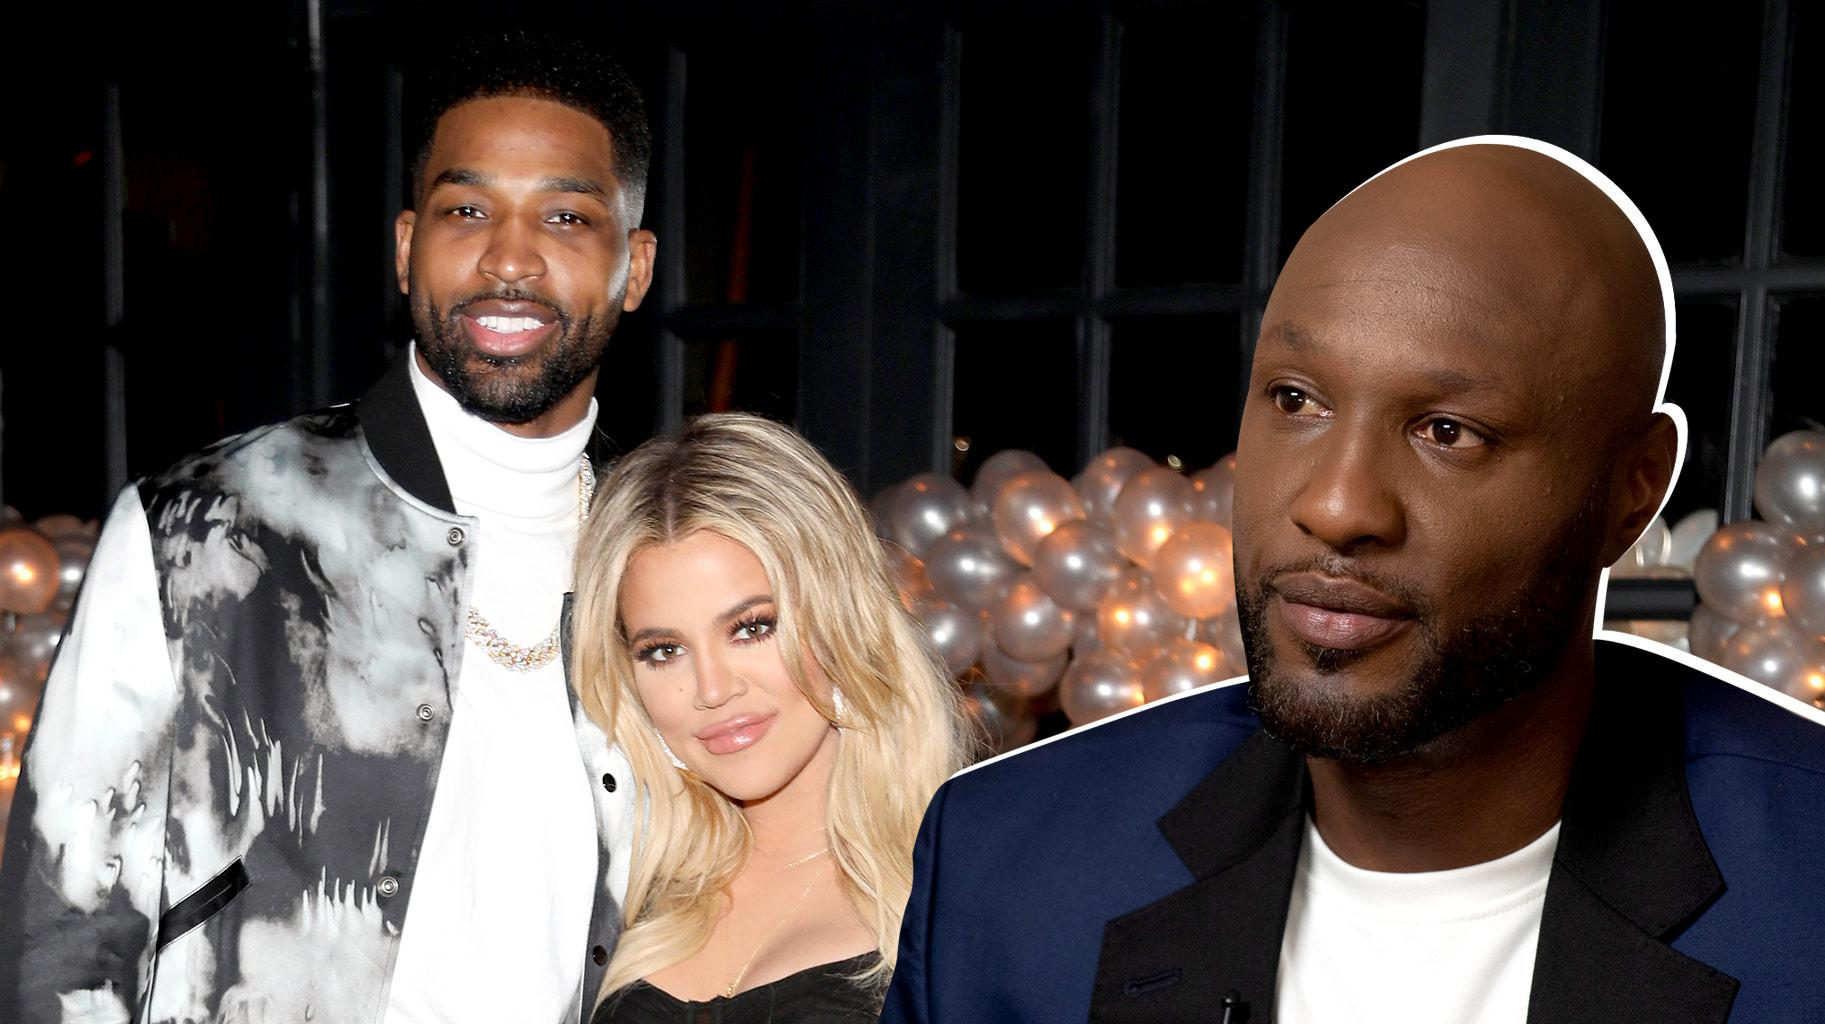 KUWTK: Lamar Odom Wishes Khloe Kardashian Nothing But Happiness If She And Tristan Thompson Are Truly Dating Again!